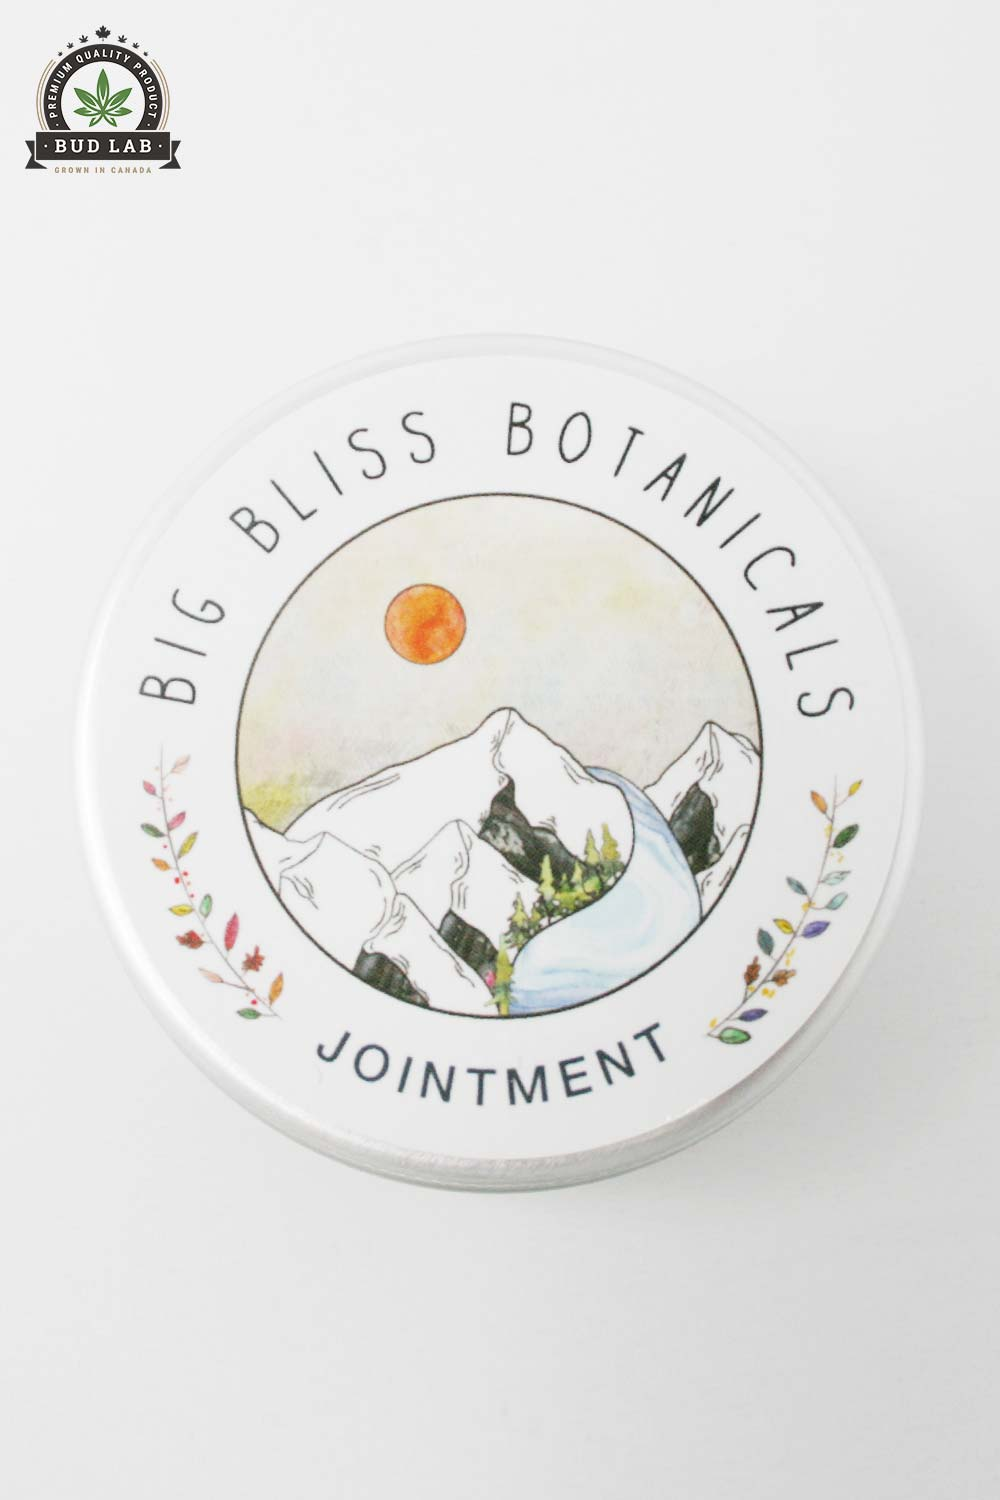 Bud Lab Bug Bliss Jointment, Product With Lid On